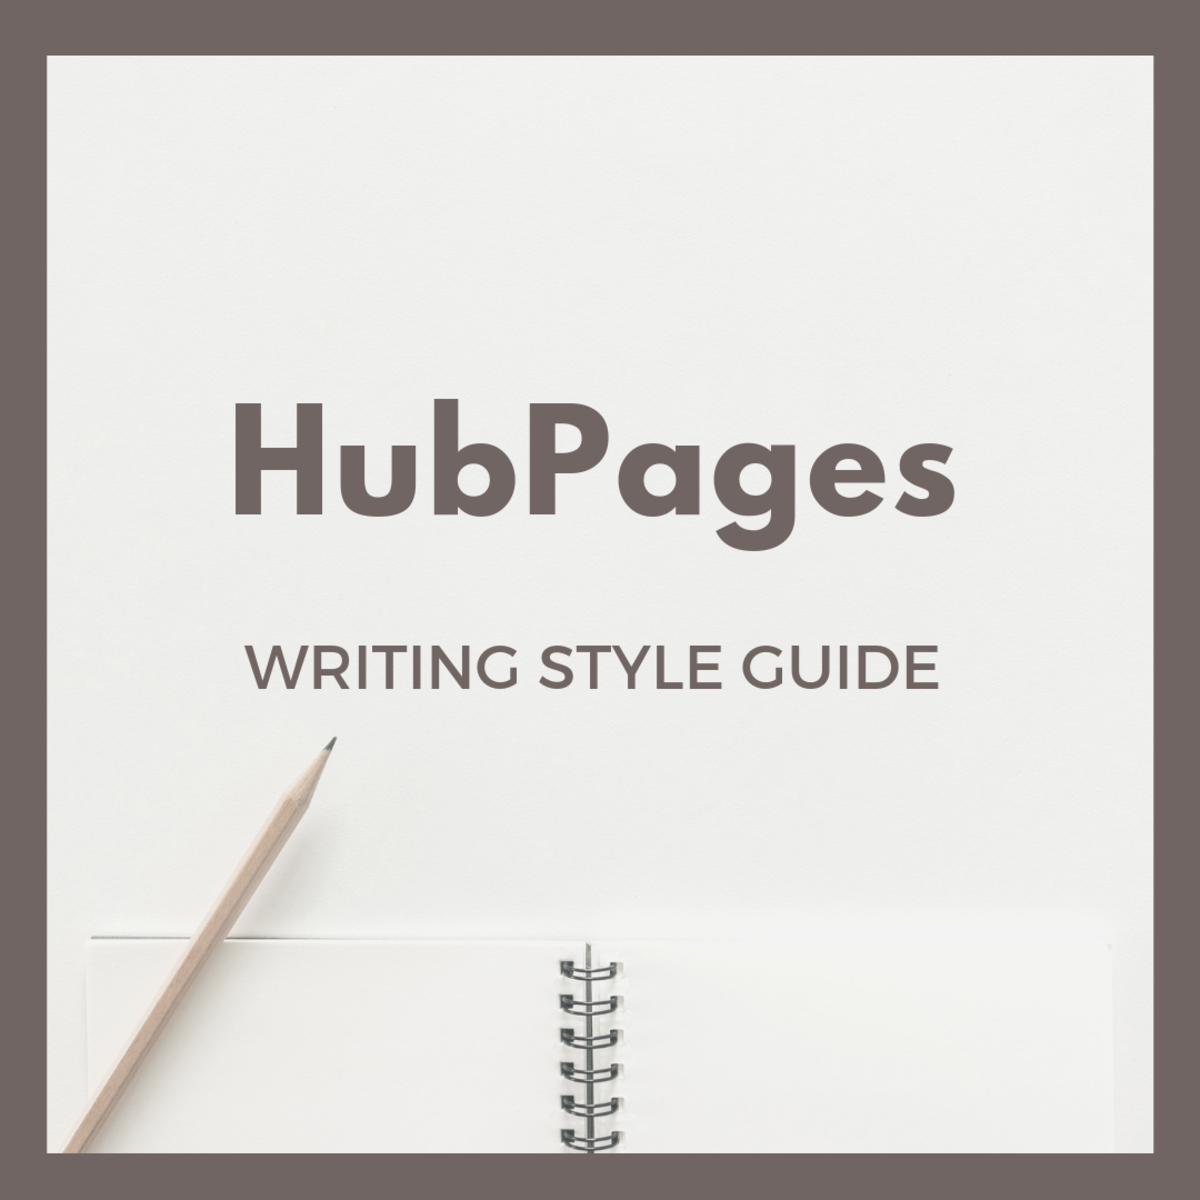 HubPages Writing Style Guide